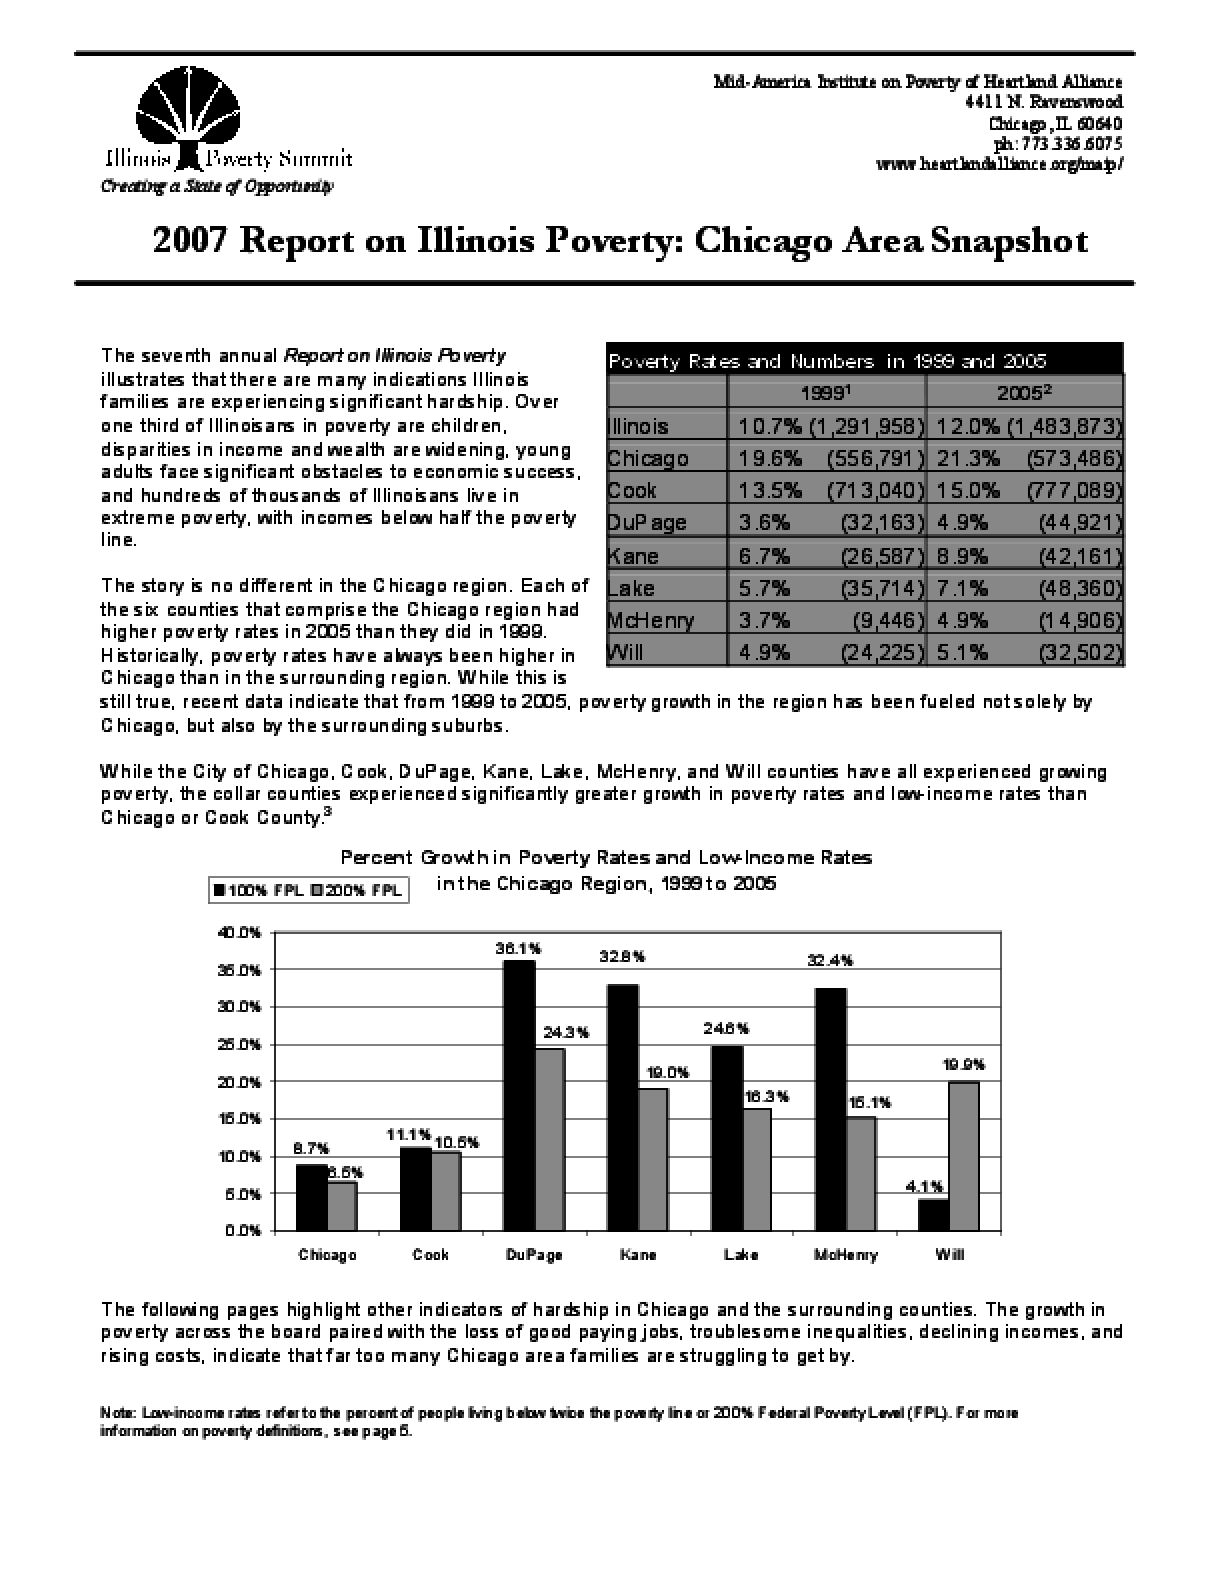 2007 Chicago Area Snapshot on Poverty